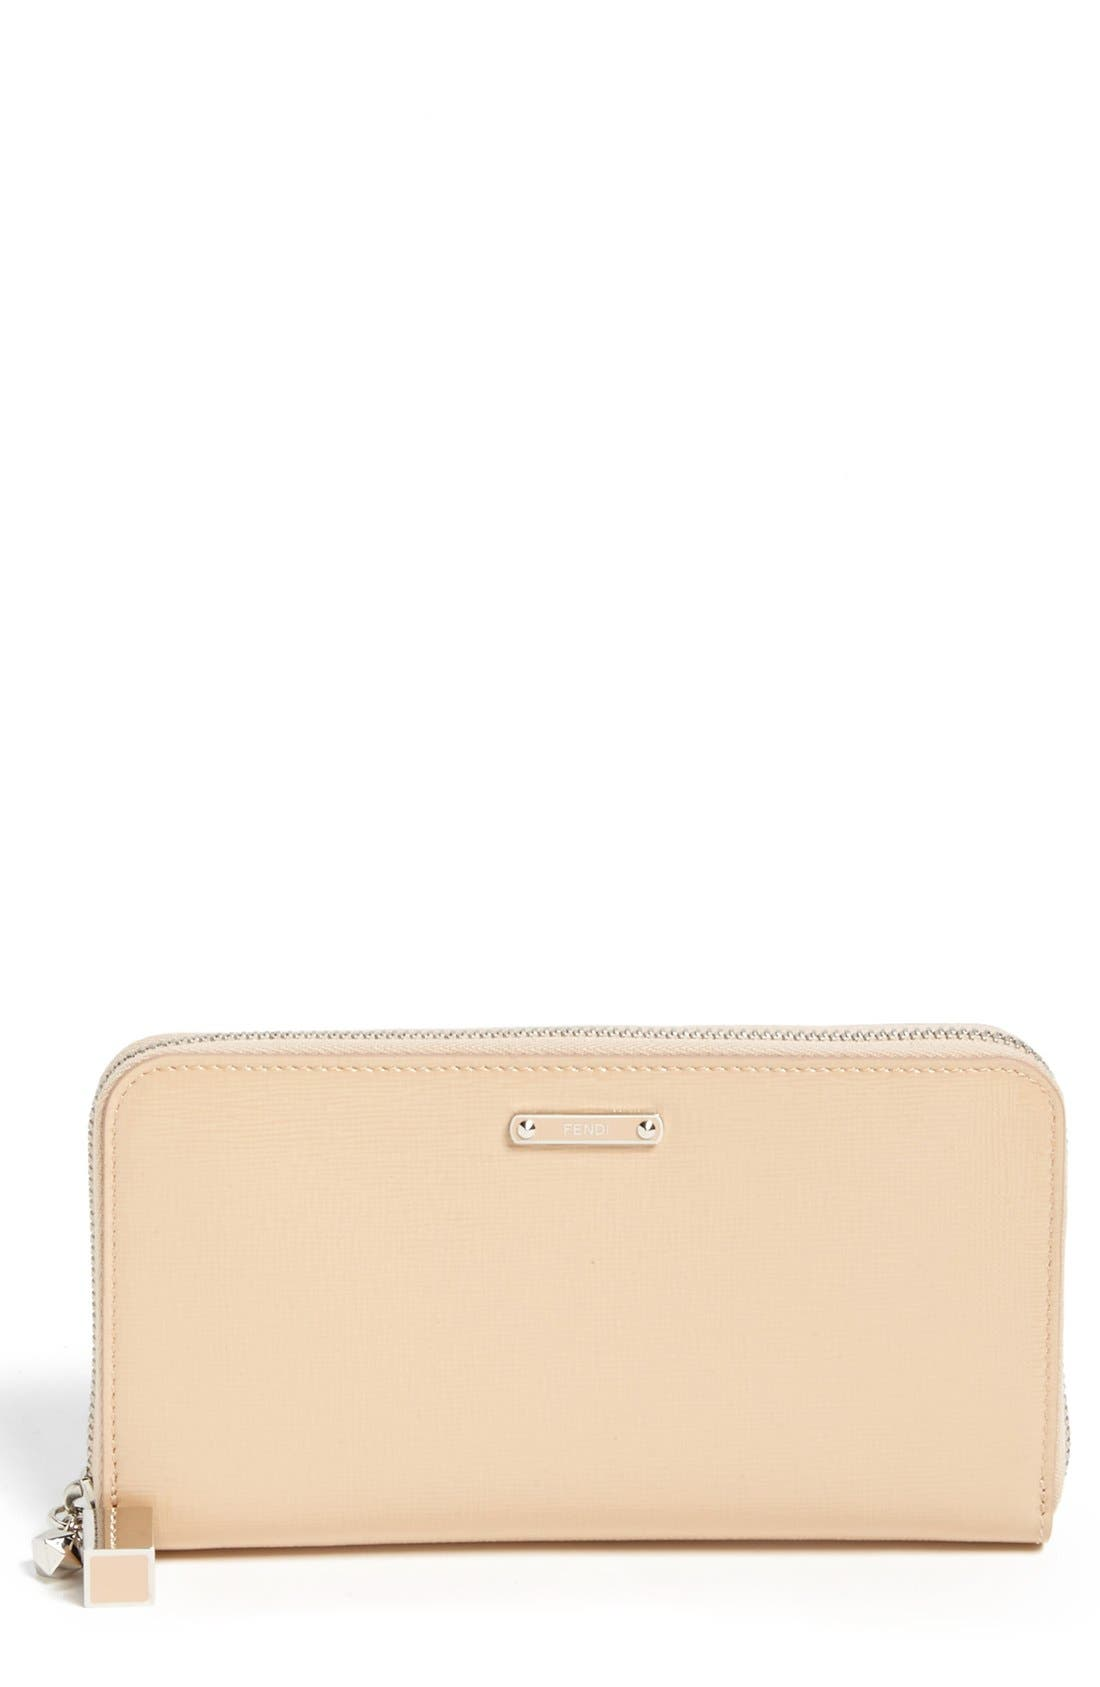 Alternate Image 1 Selected - Fendi 'Crayons - Vernice' Leather Continental Wallet